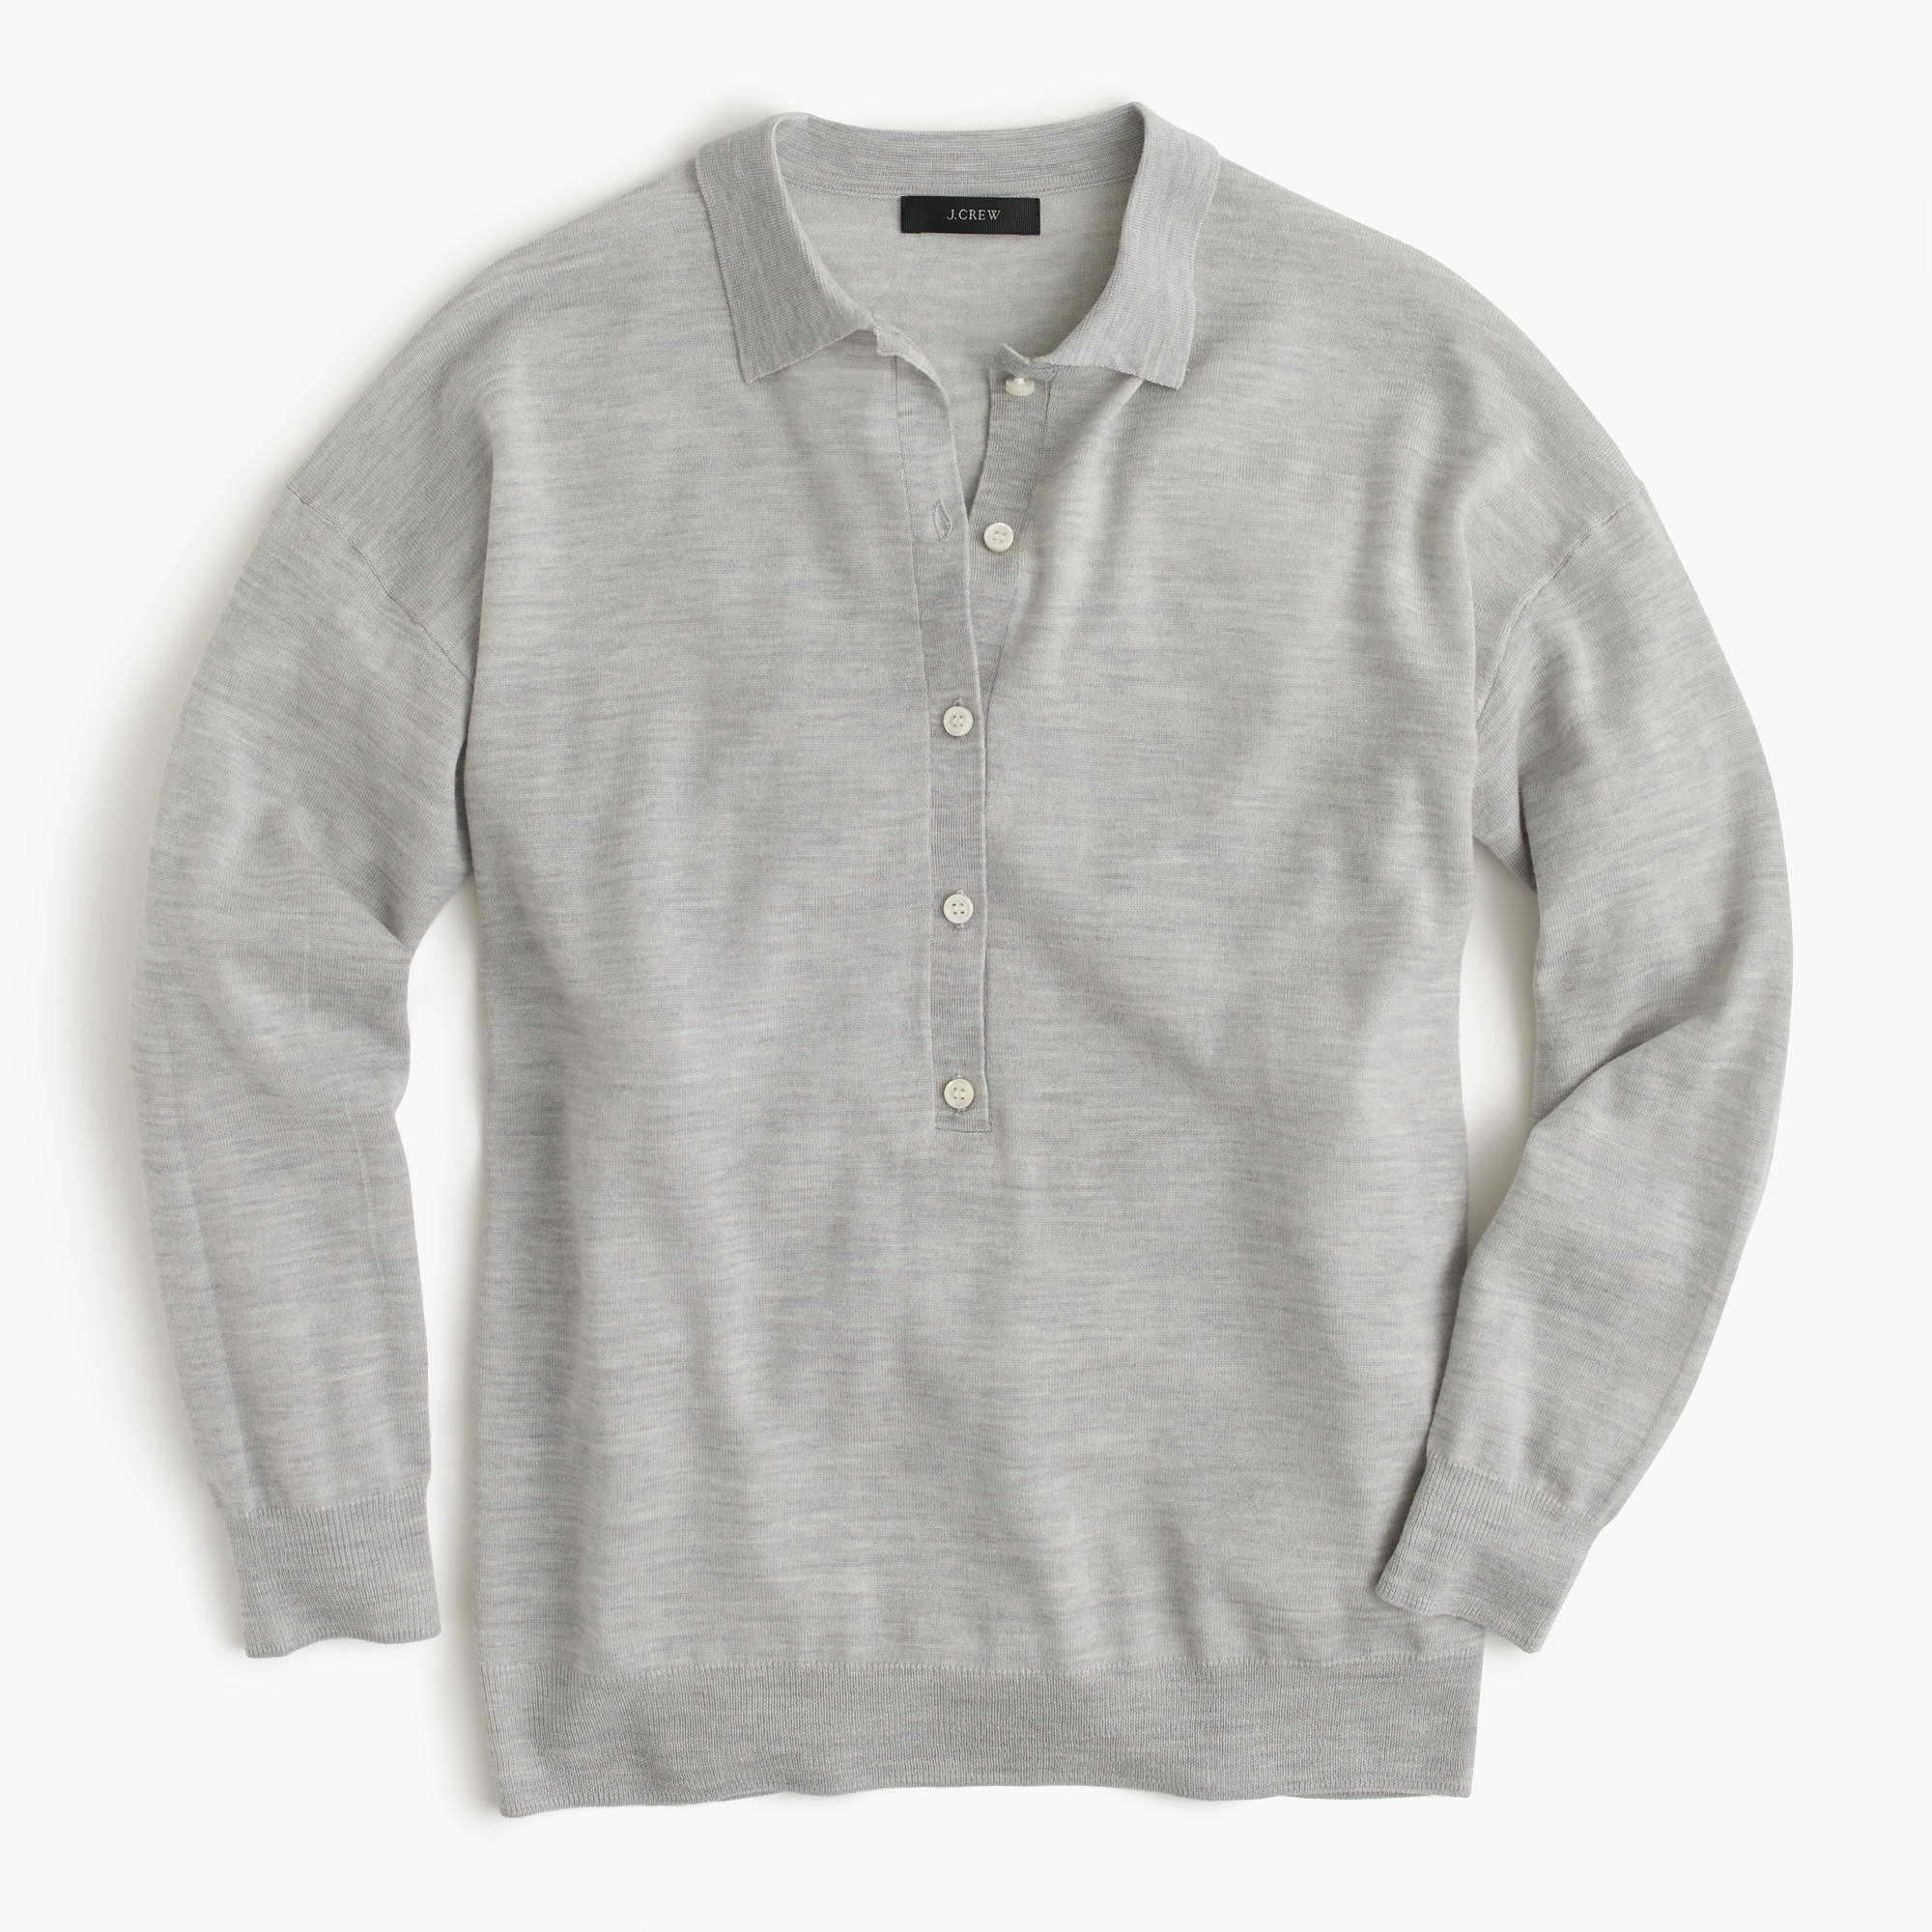 f484abf70 ... france lyst j.crew featherweight merino wool long sleeve polo shirt in  832a4 48a5e